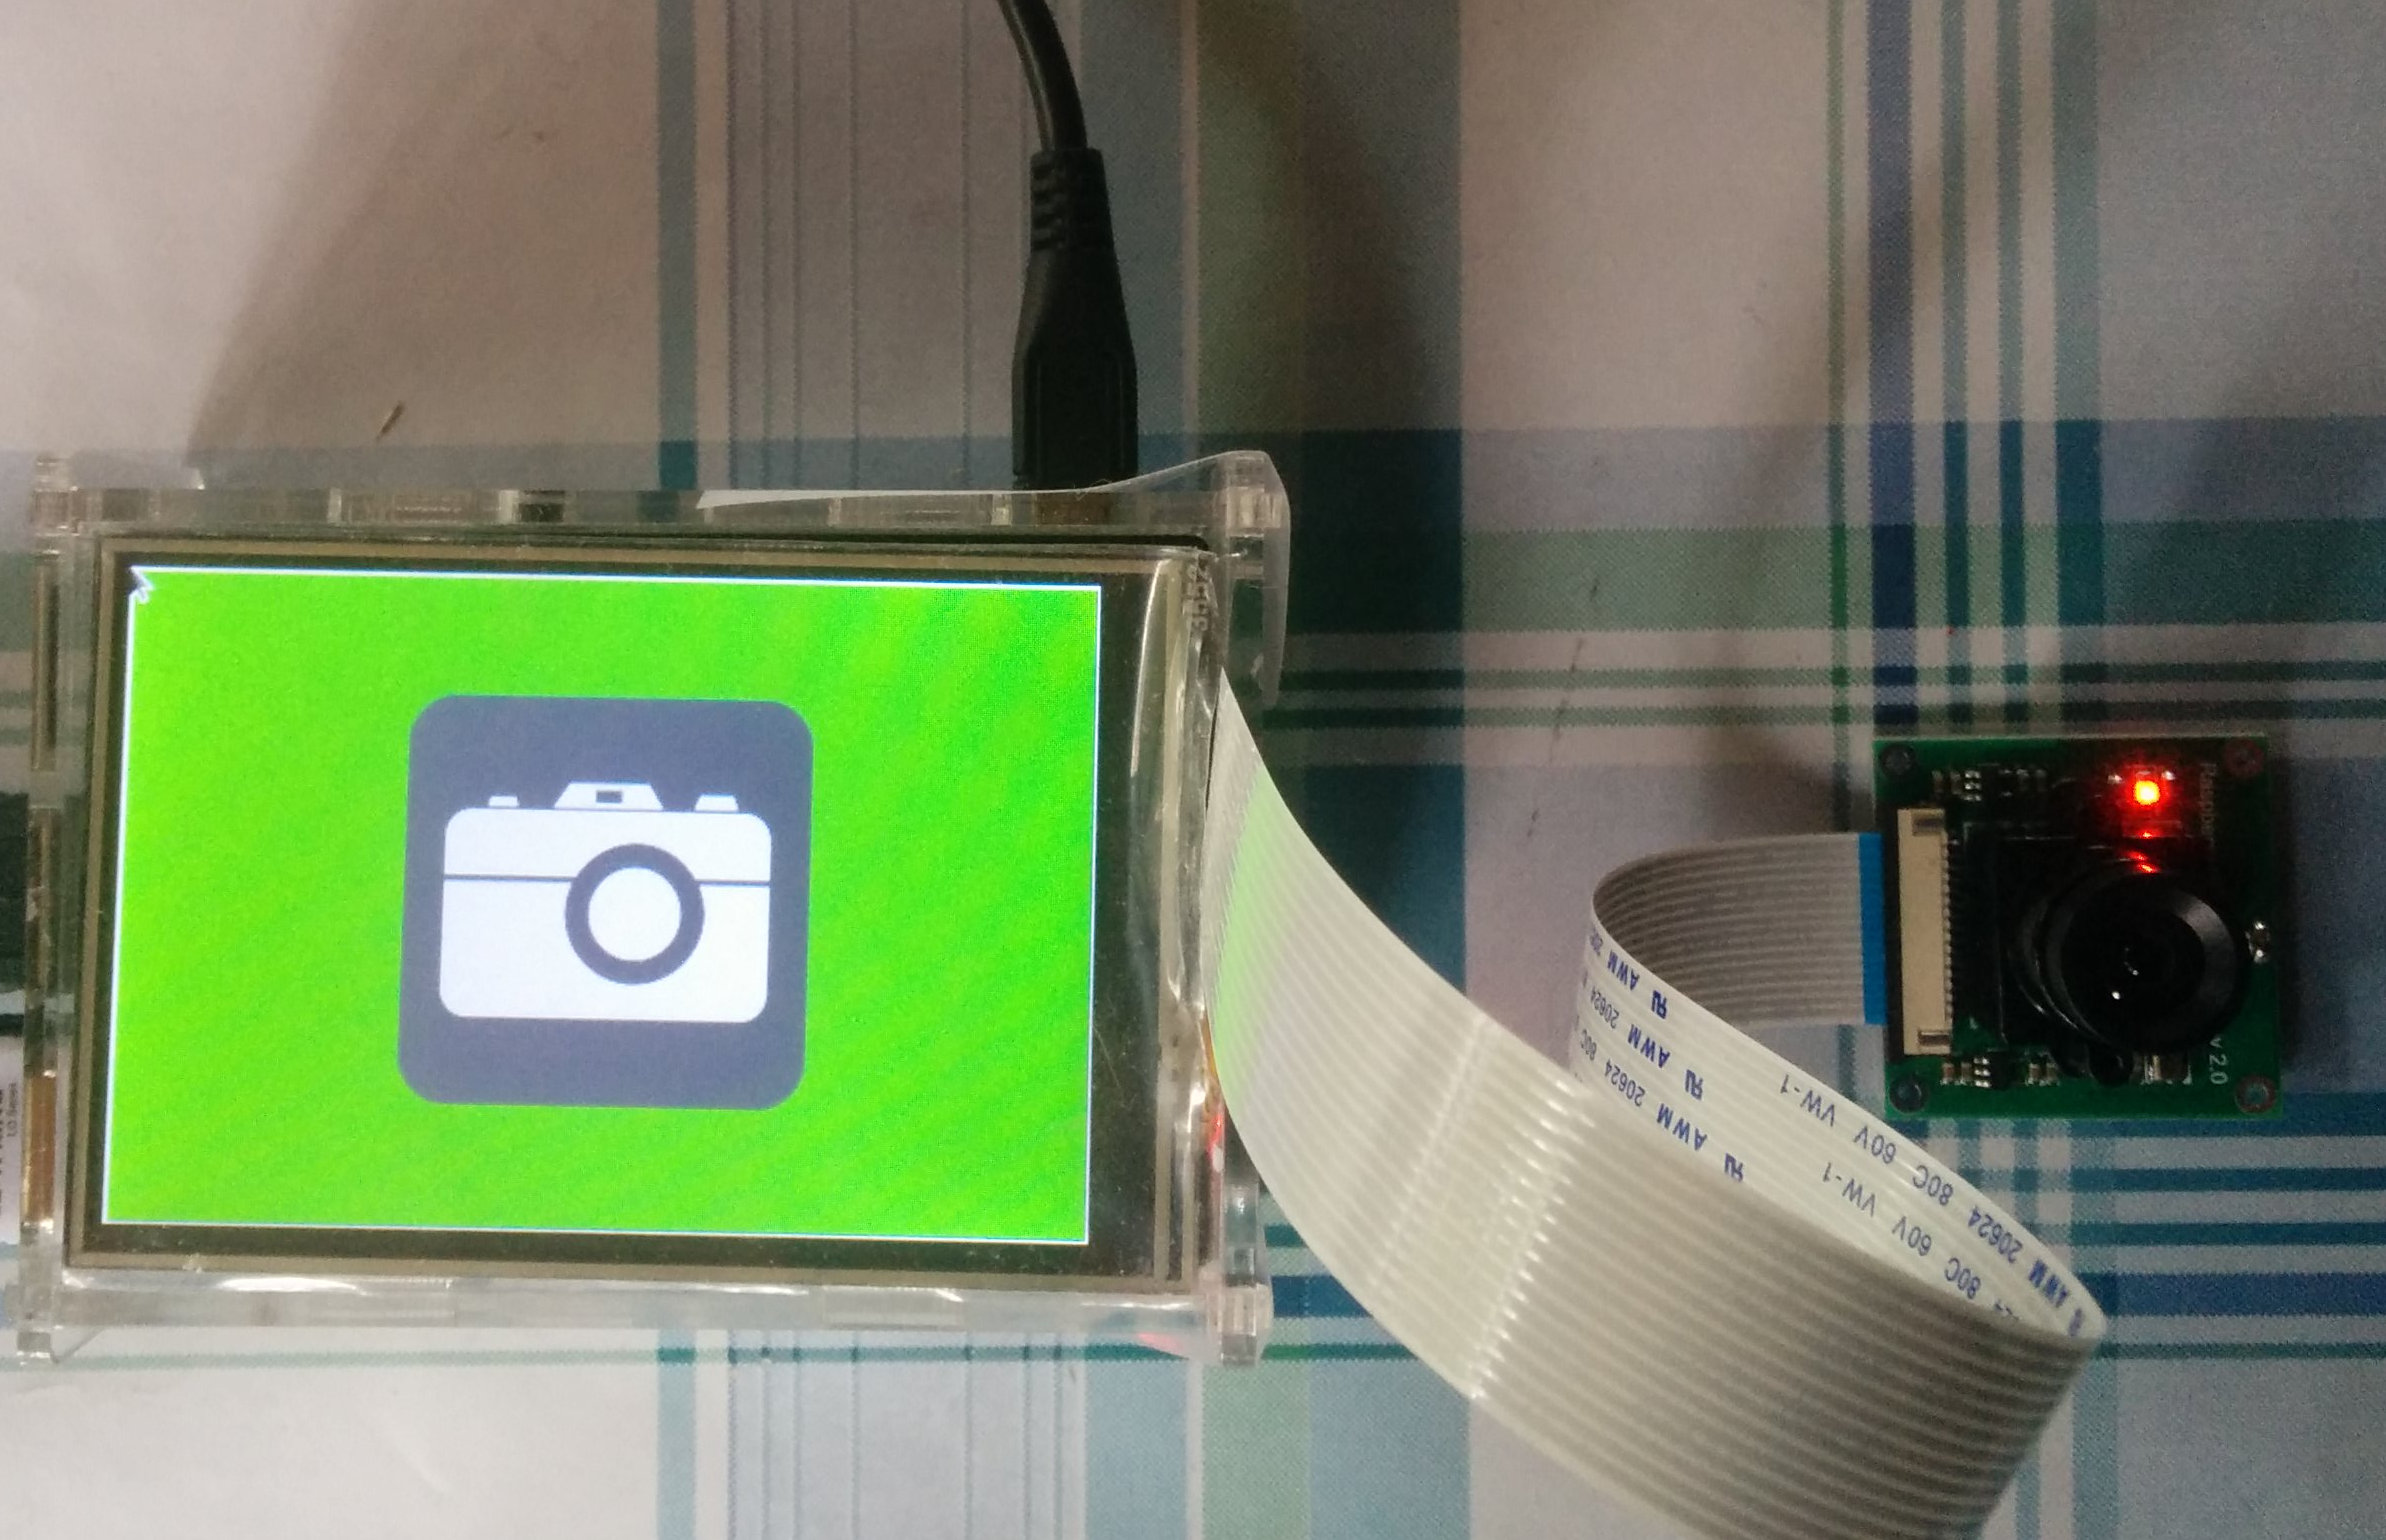 Raspberry Pi photobooth application without the case